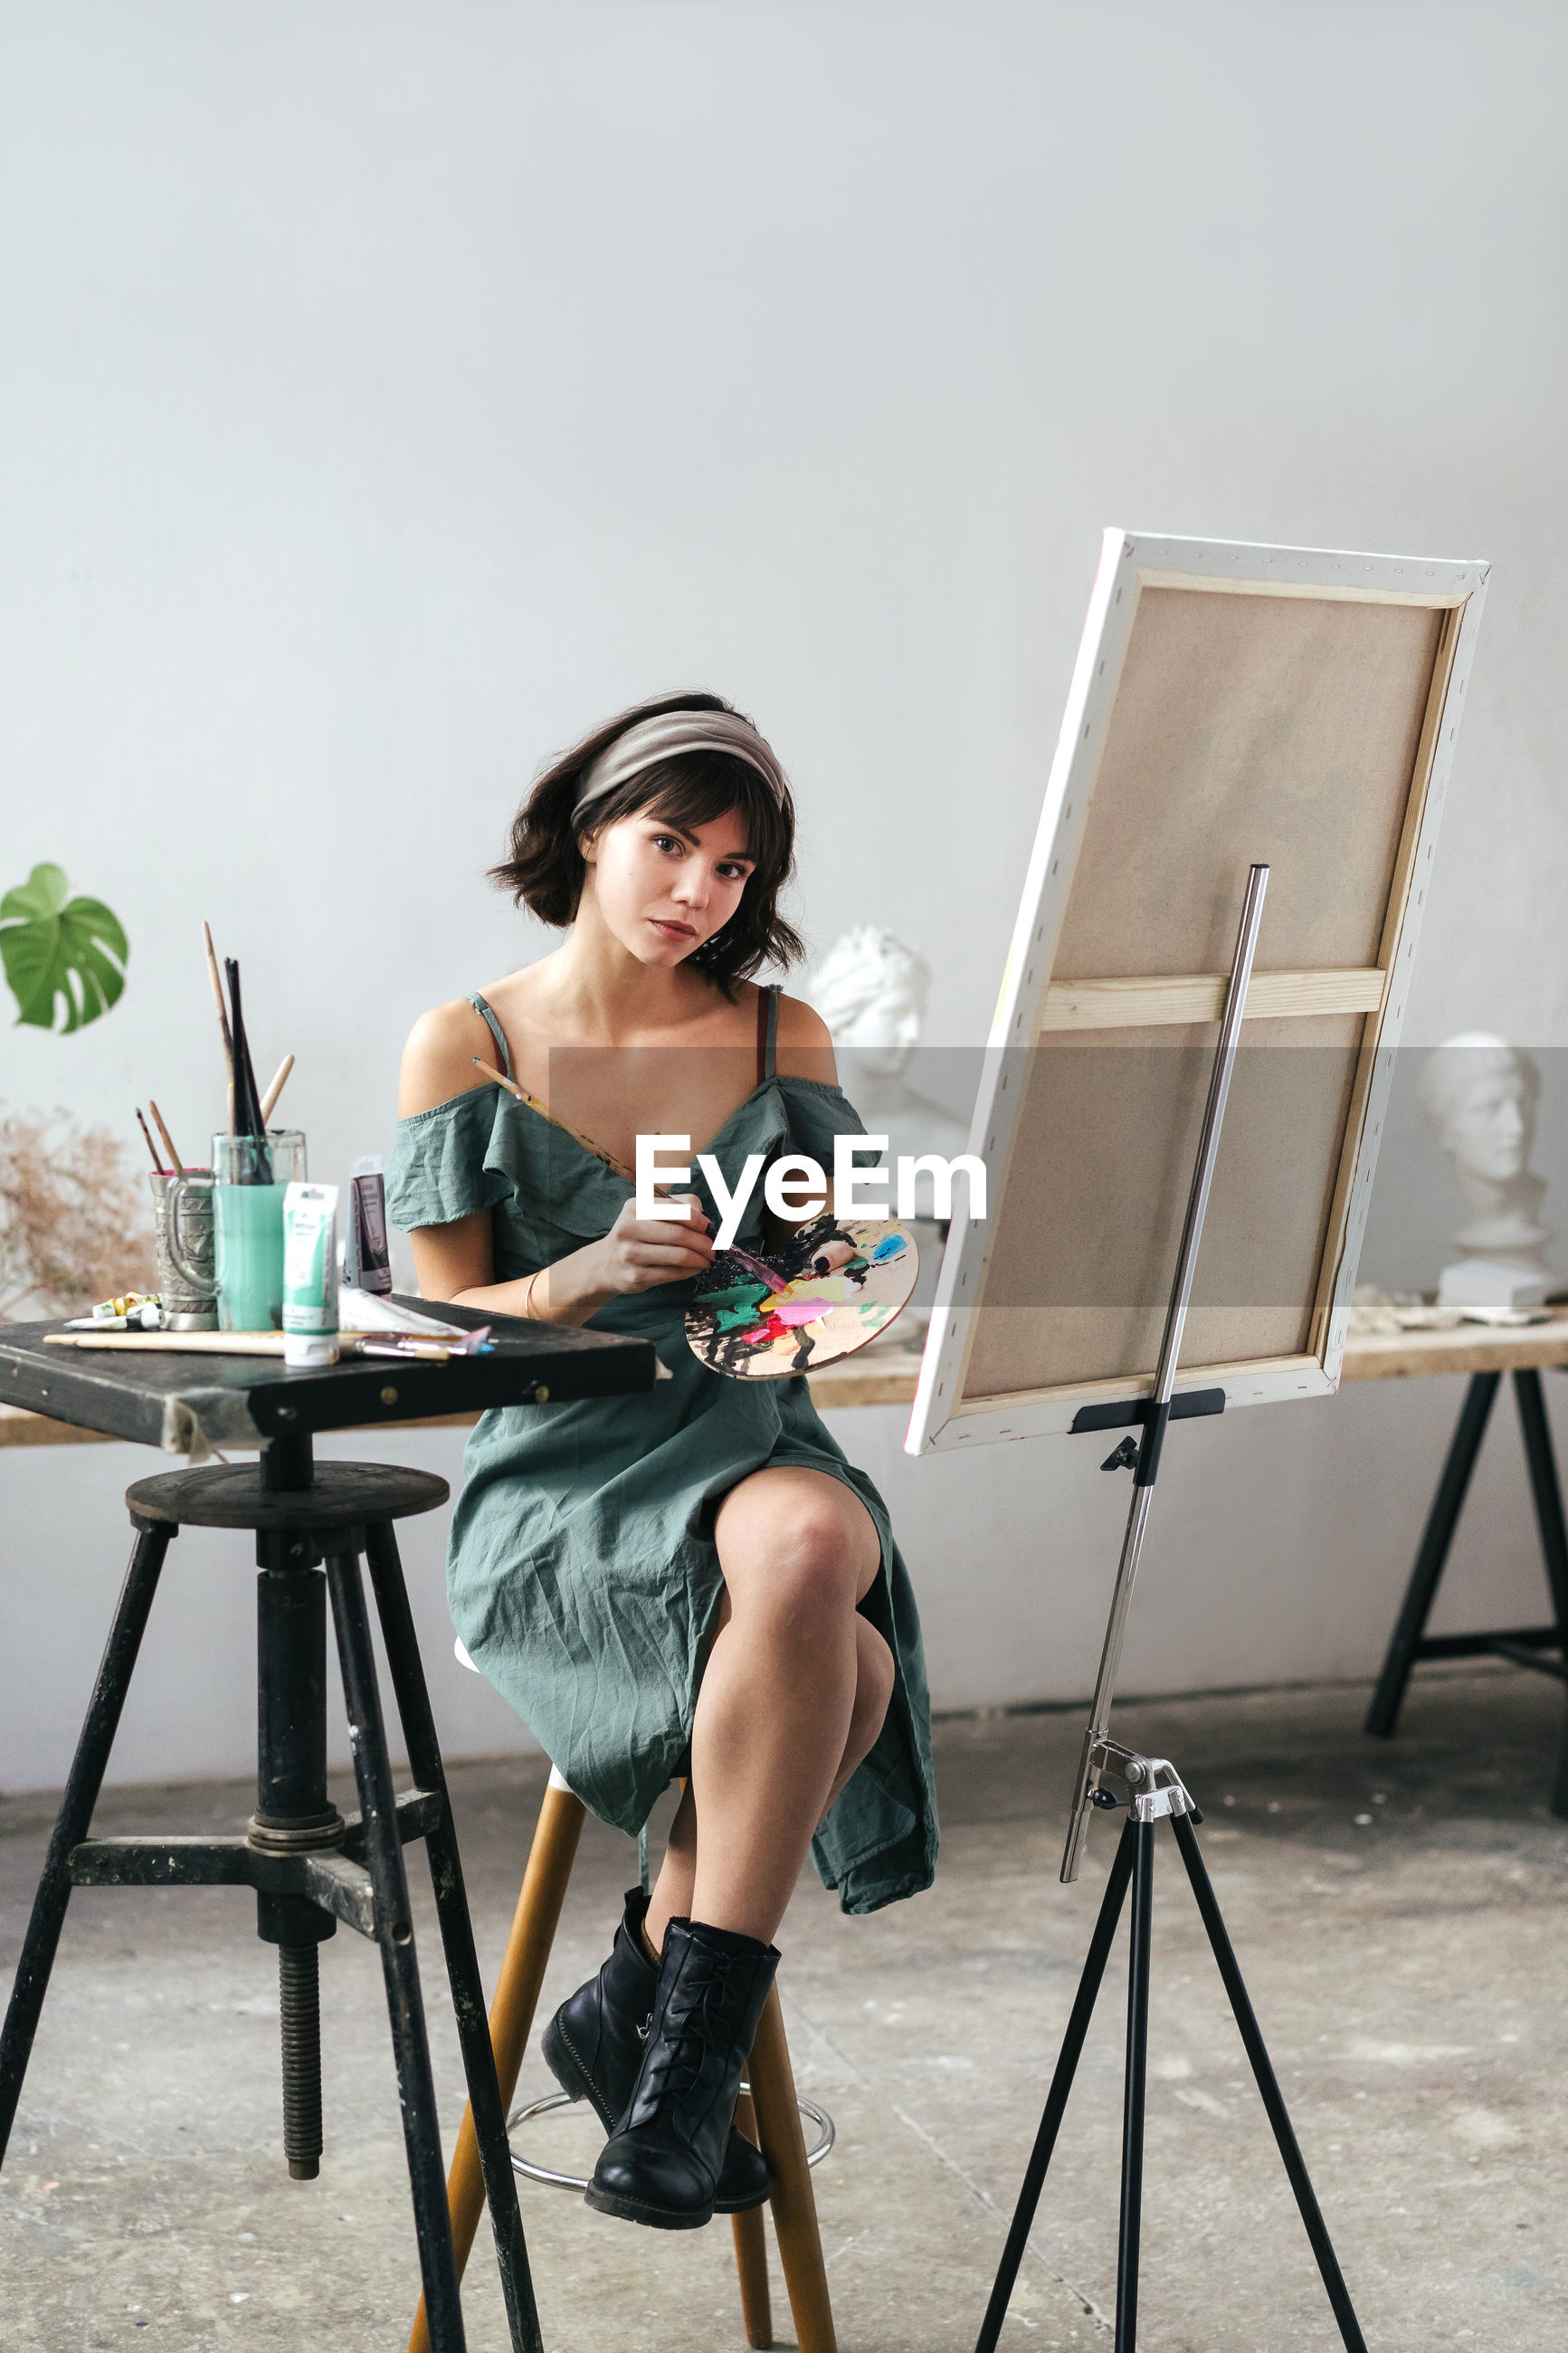 Portrait of young woman painting on canvas while sitting on table